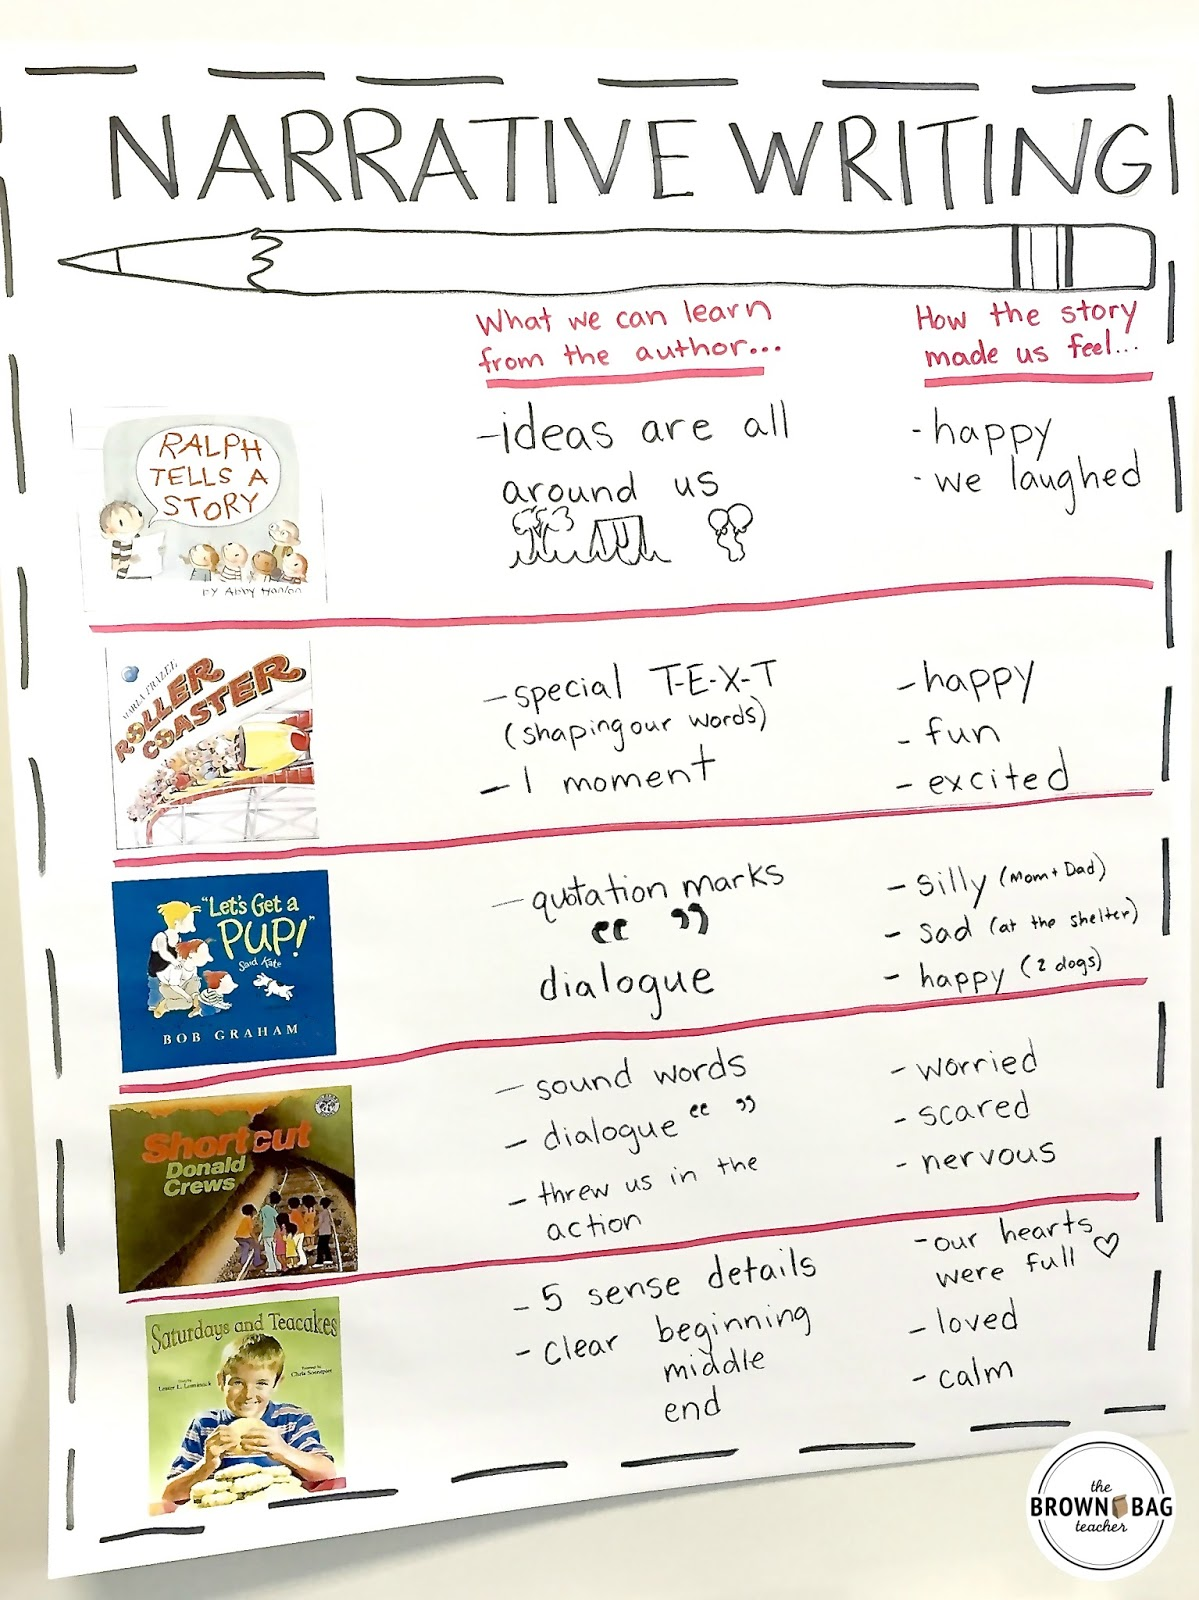 narrative writing mentor texts - the brown bag teacher